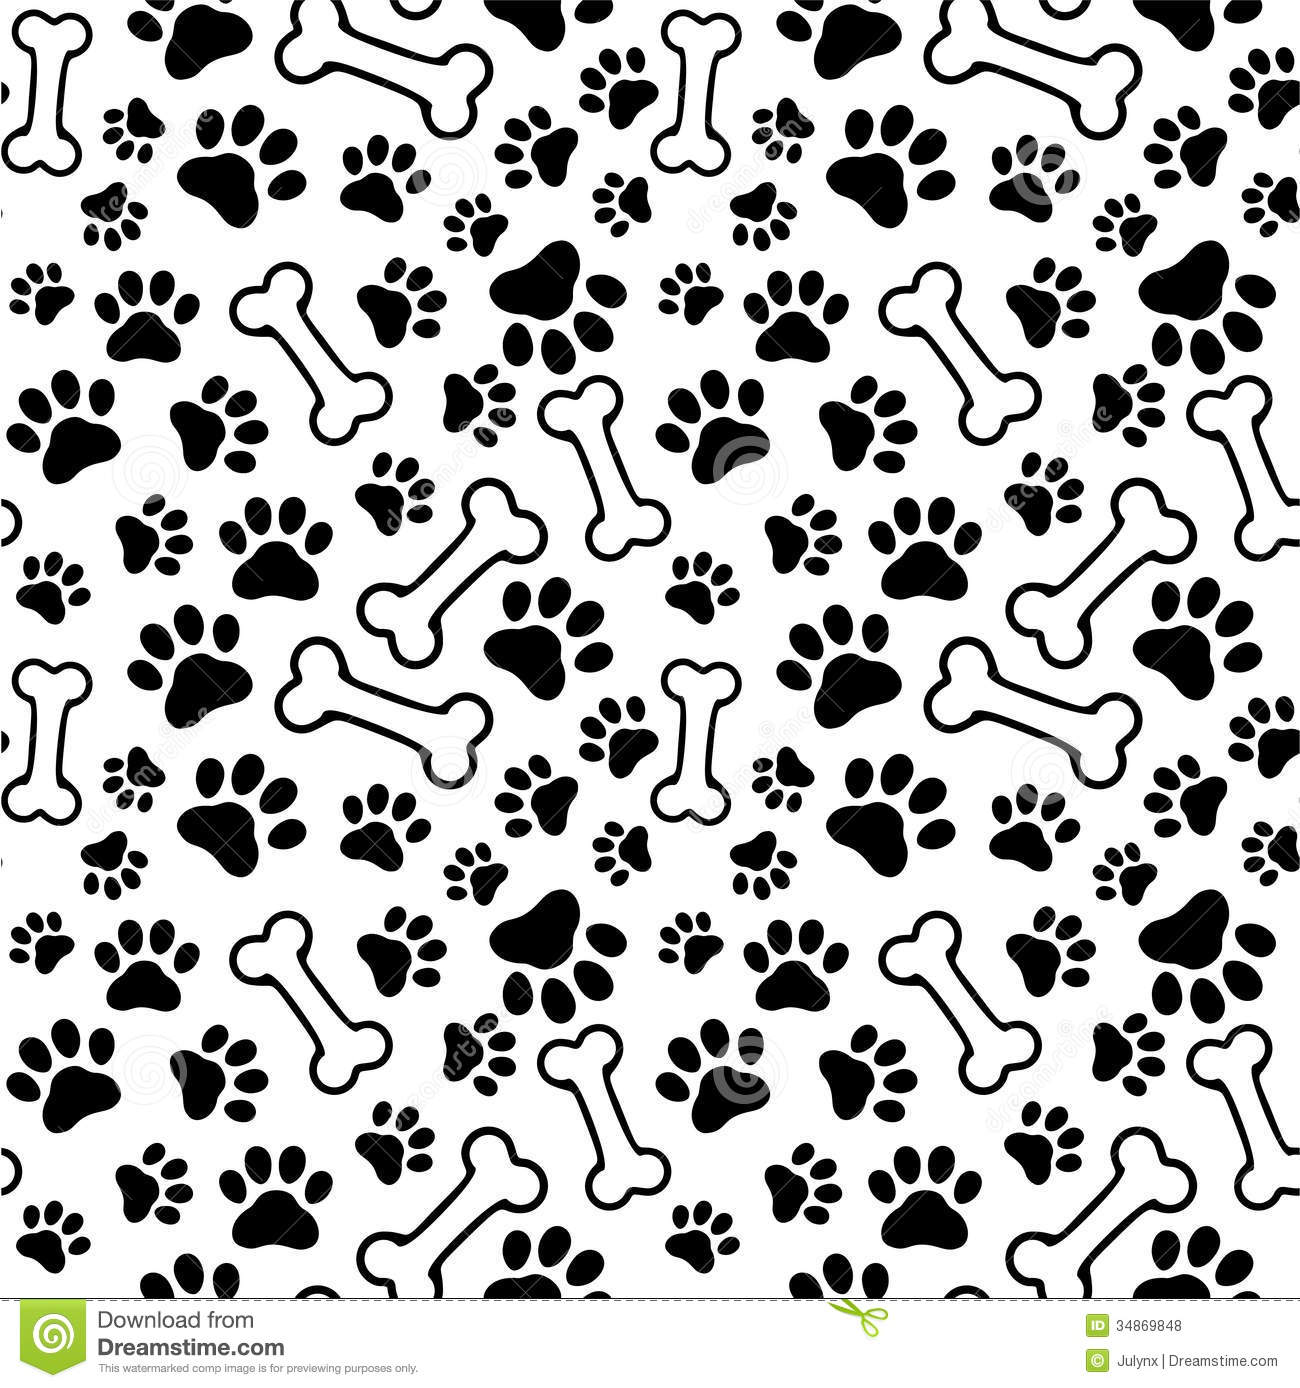 1945c48fca66 Seamless Background - Pet Paw Print And Bone Stock Vector ...